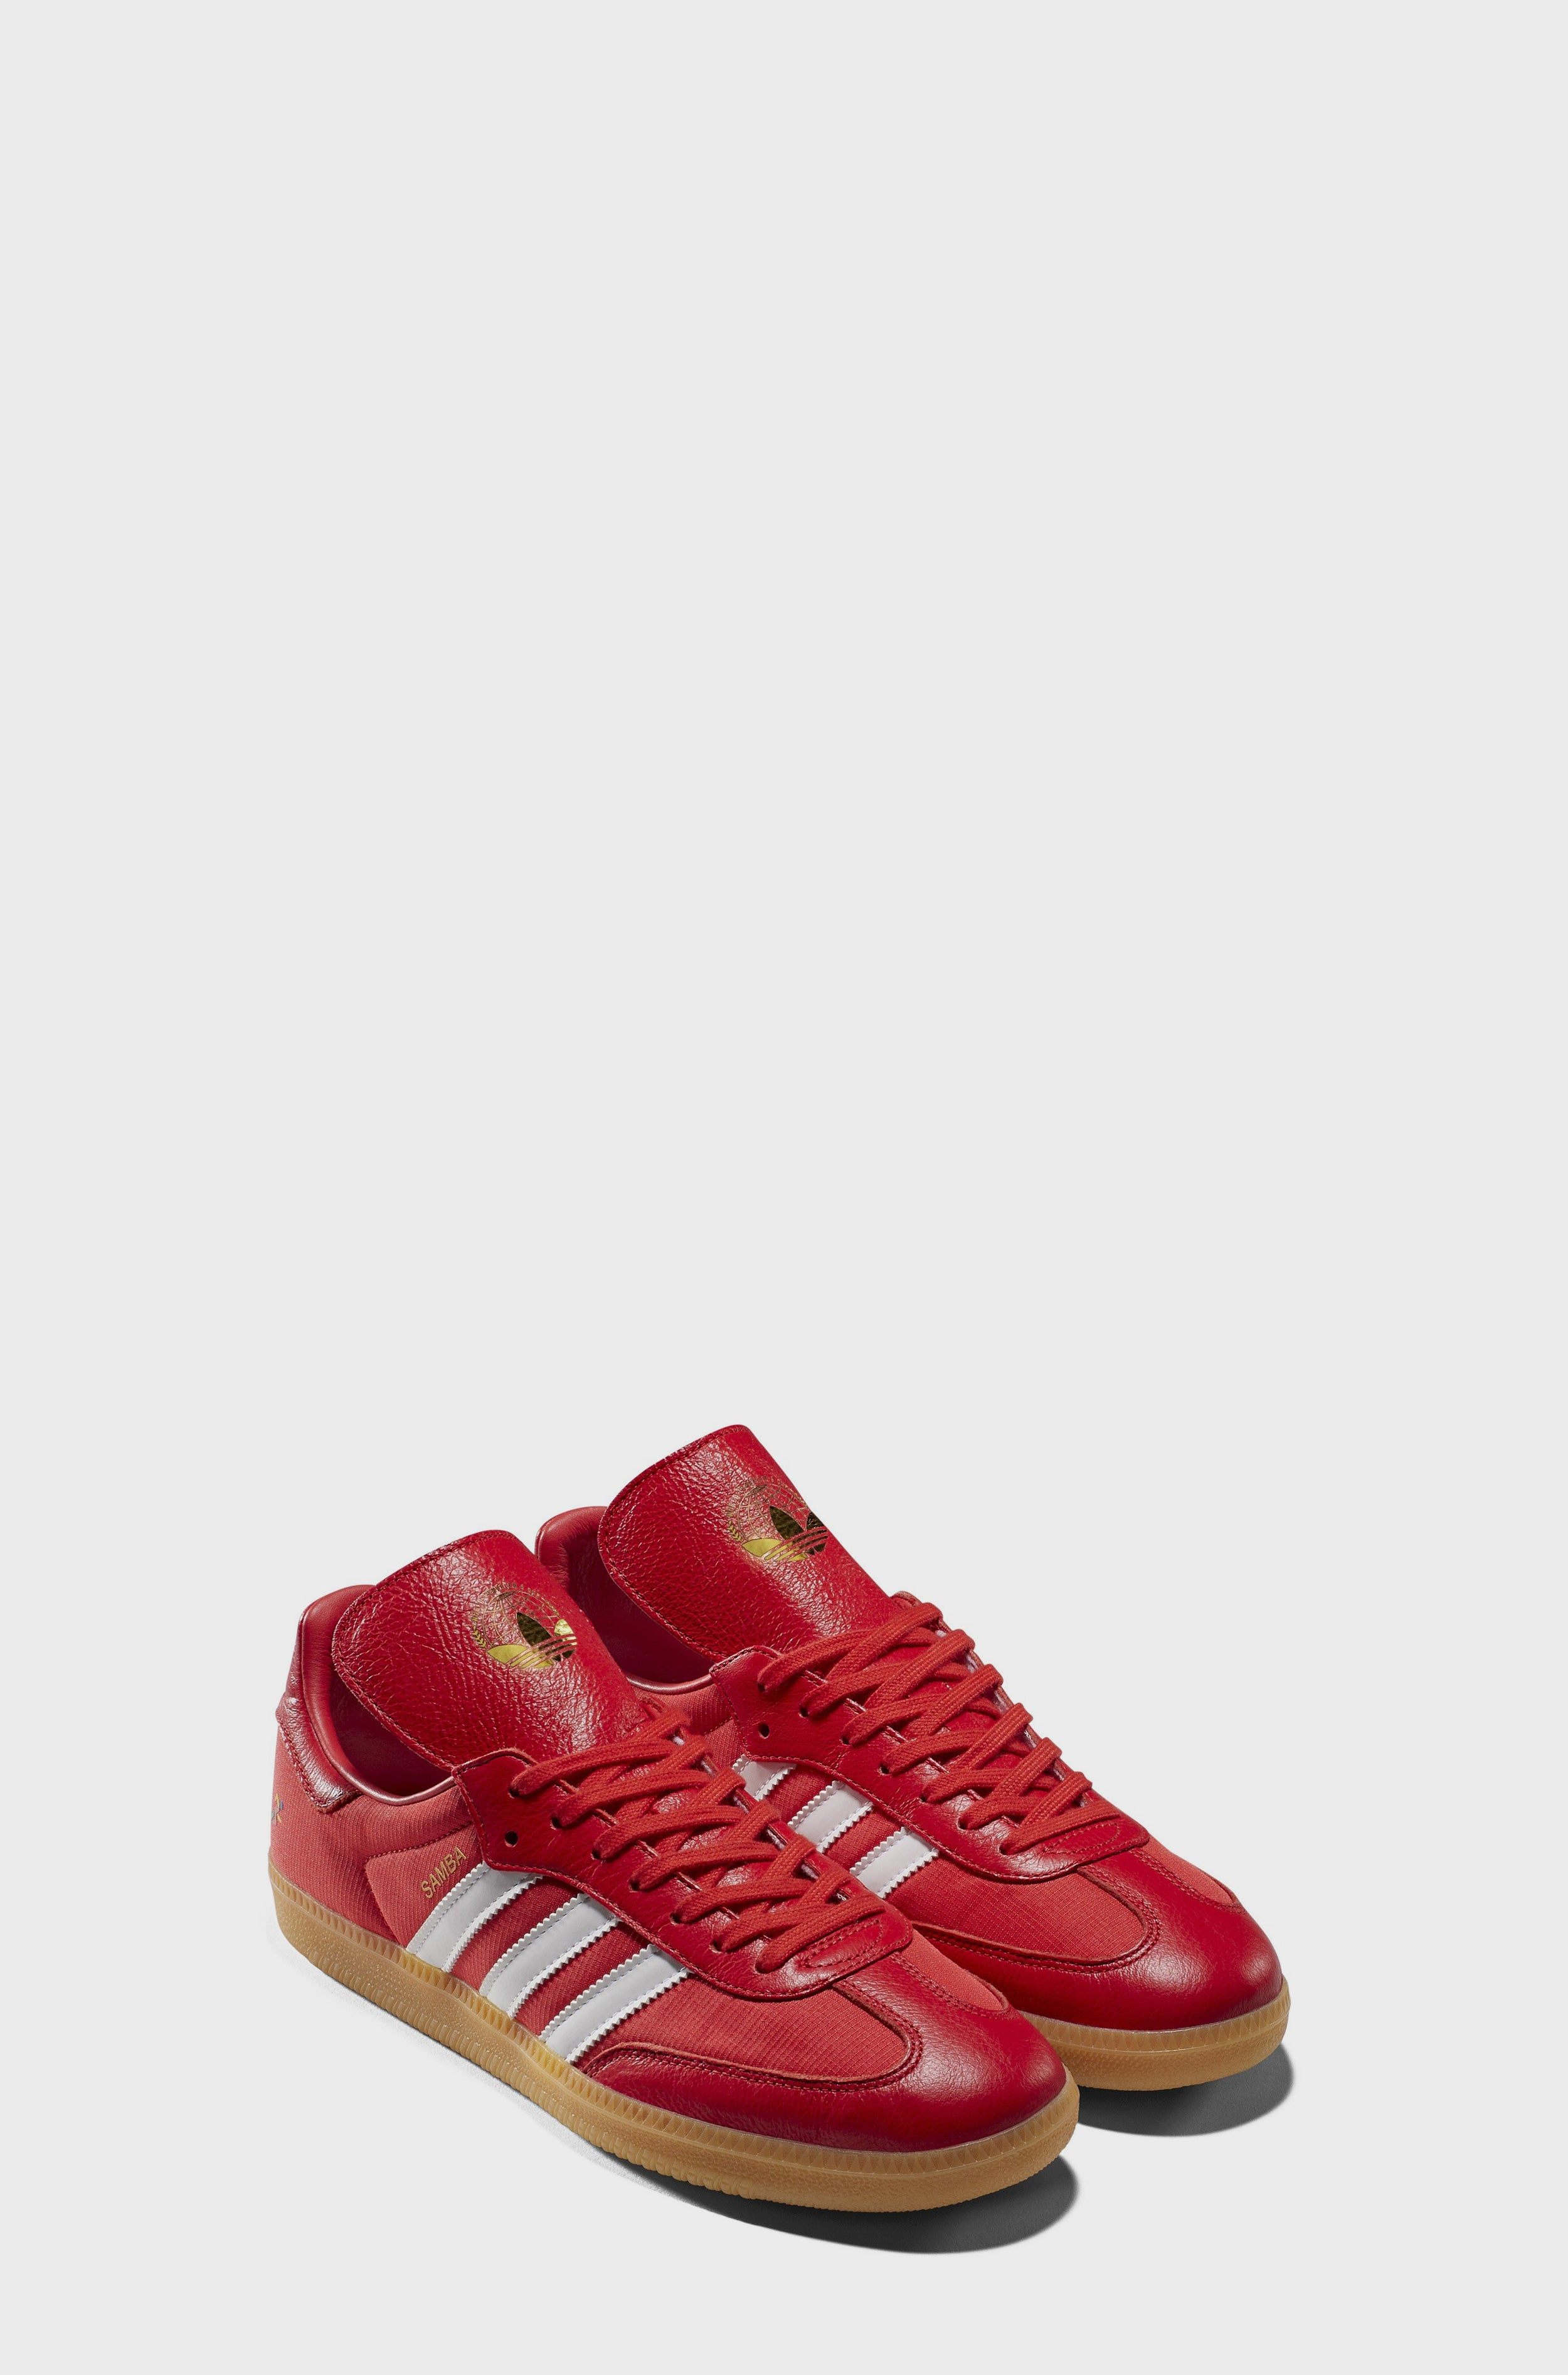 sports shoes cc782 a8a1b FOOTWEAR – Oyster Holdings